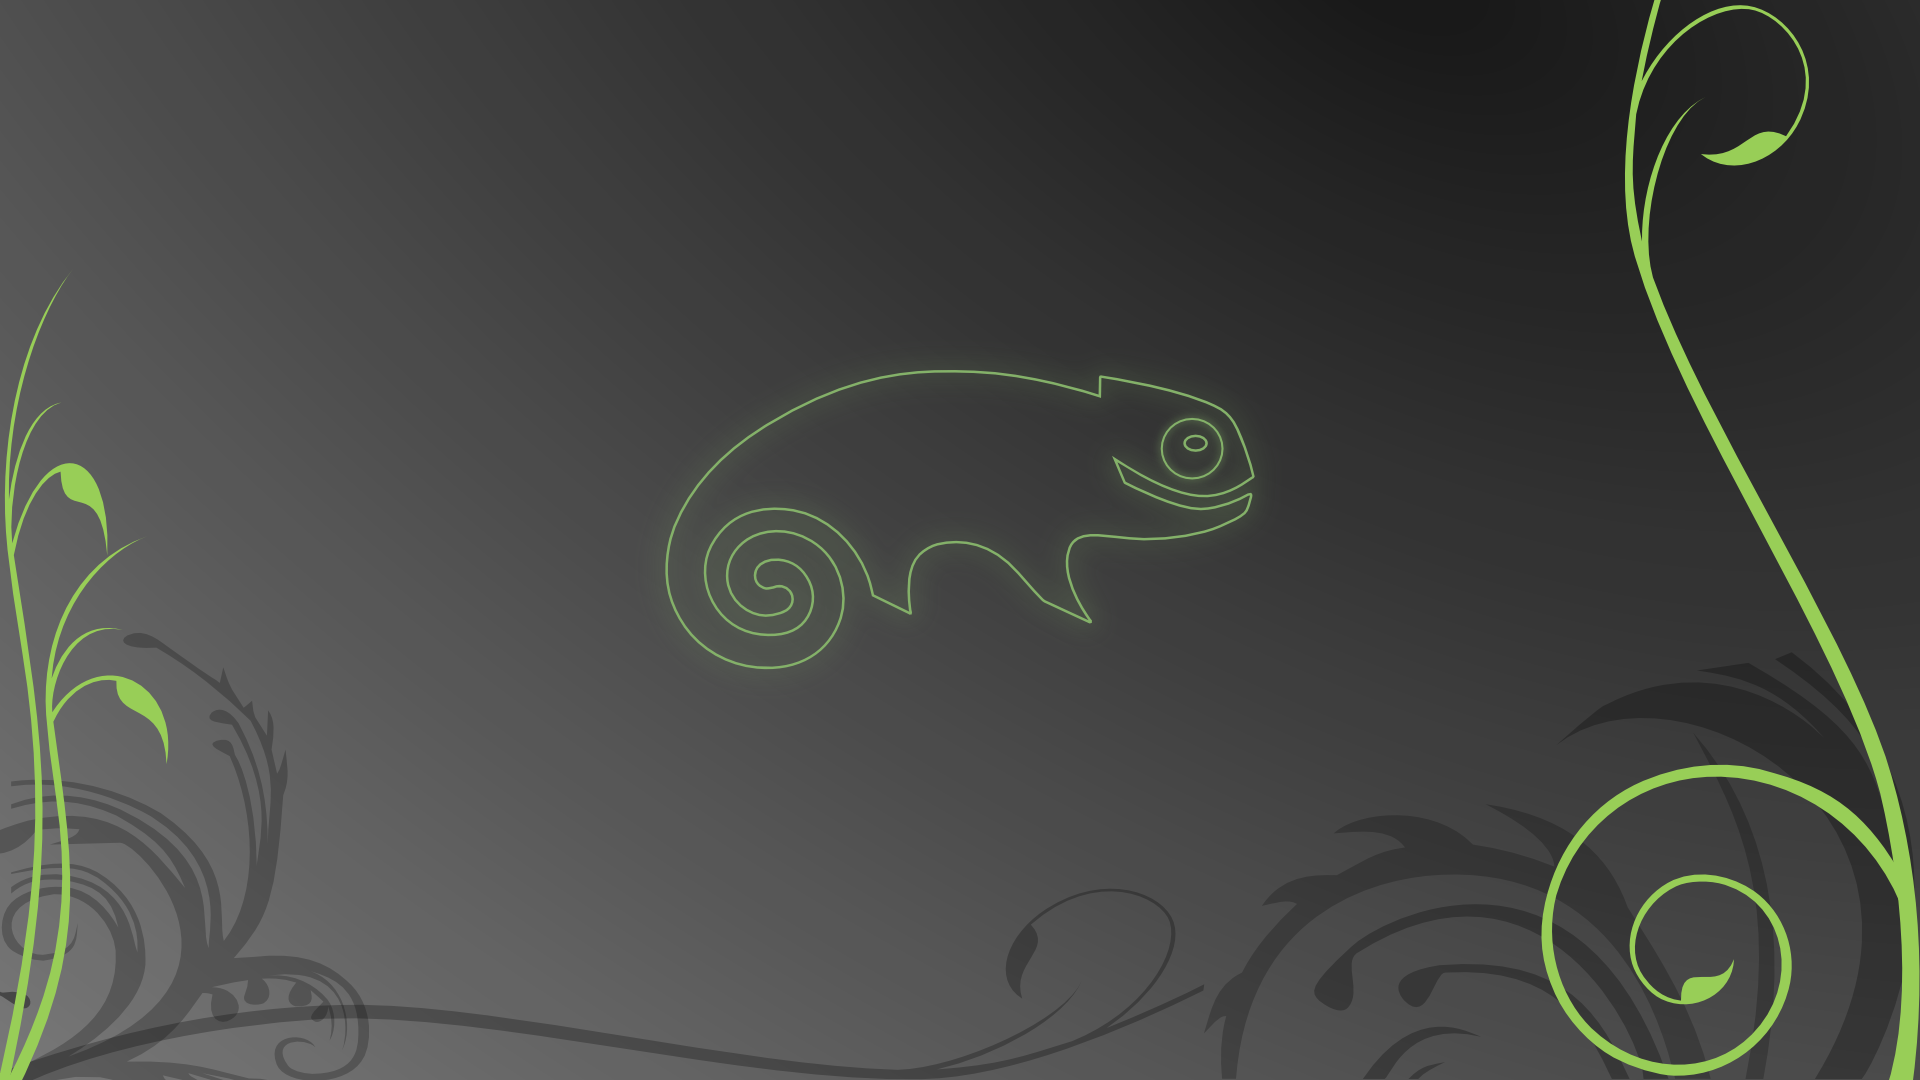 Opensuse Wallpaper